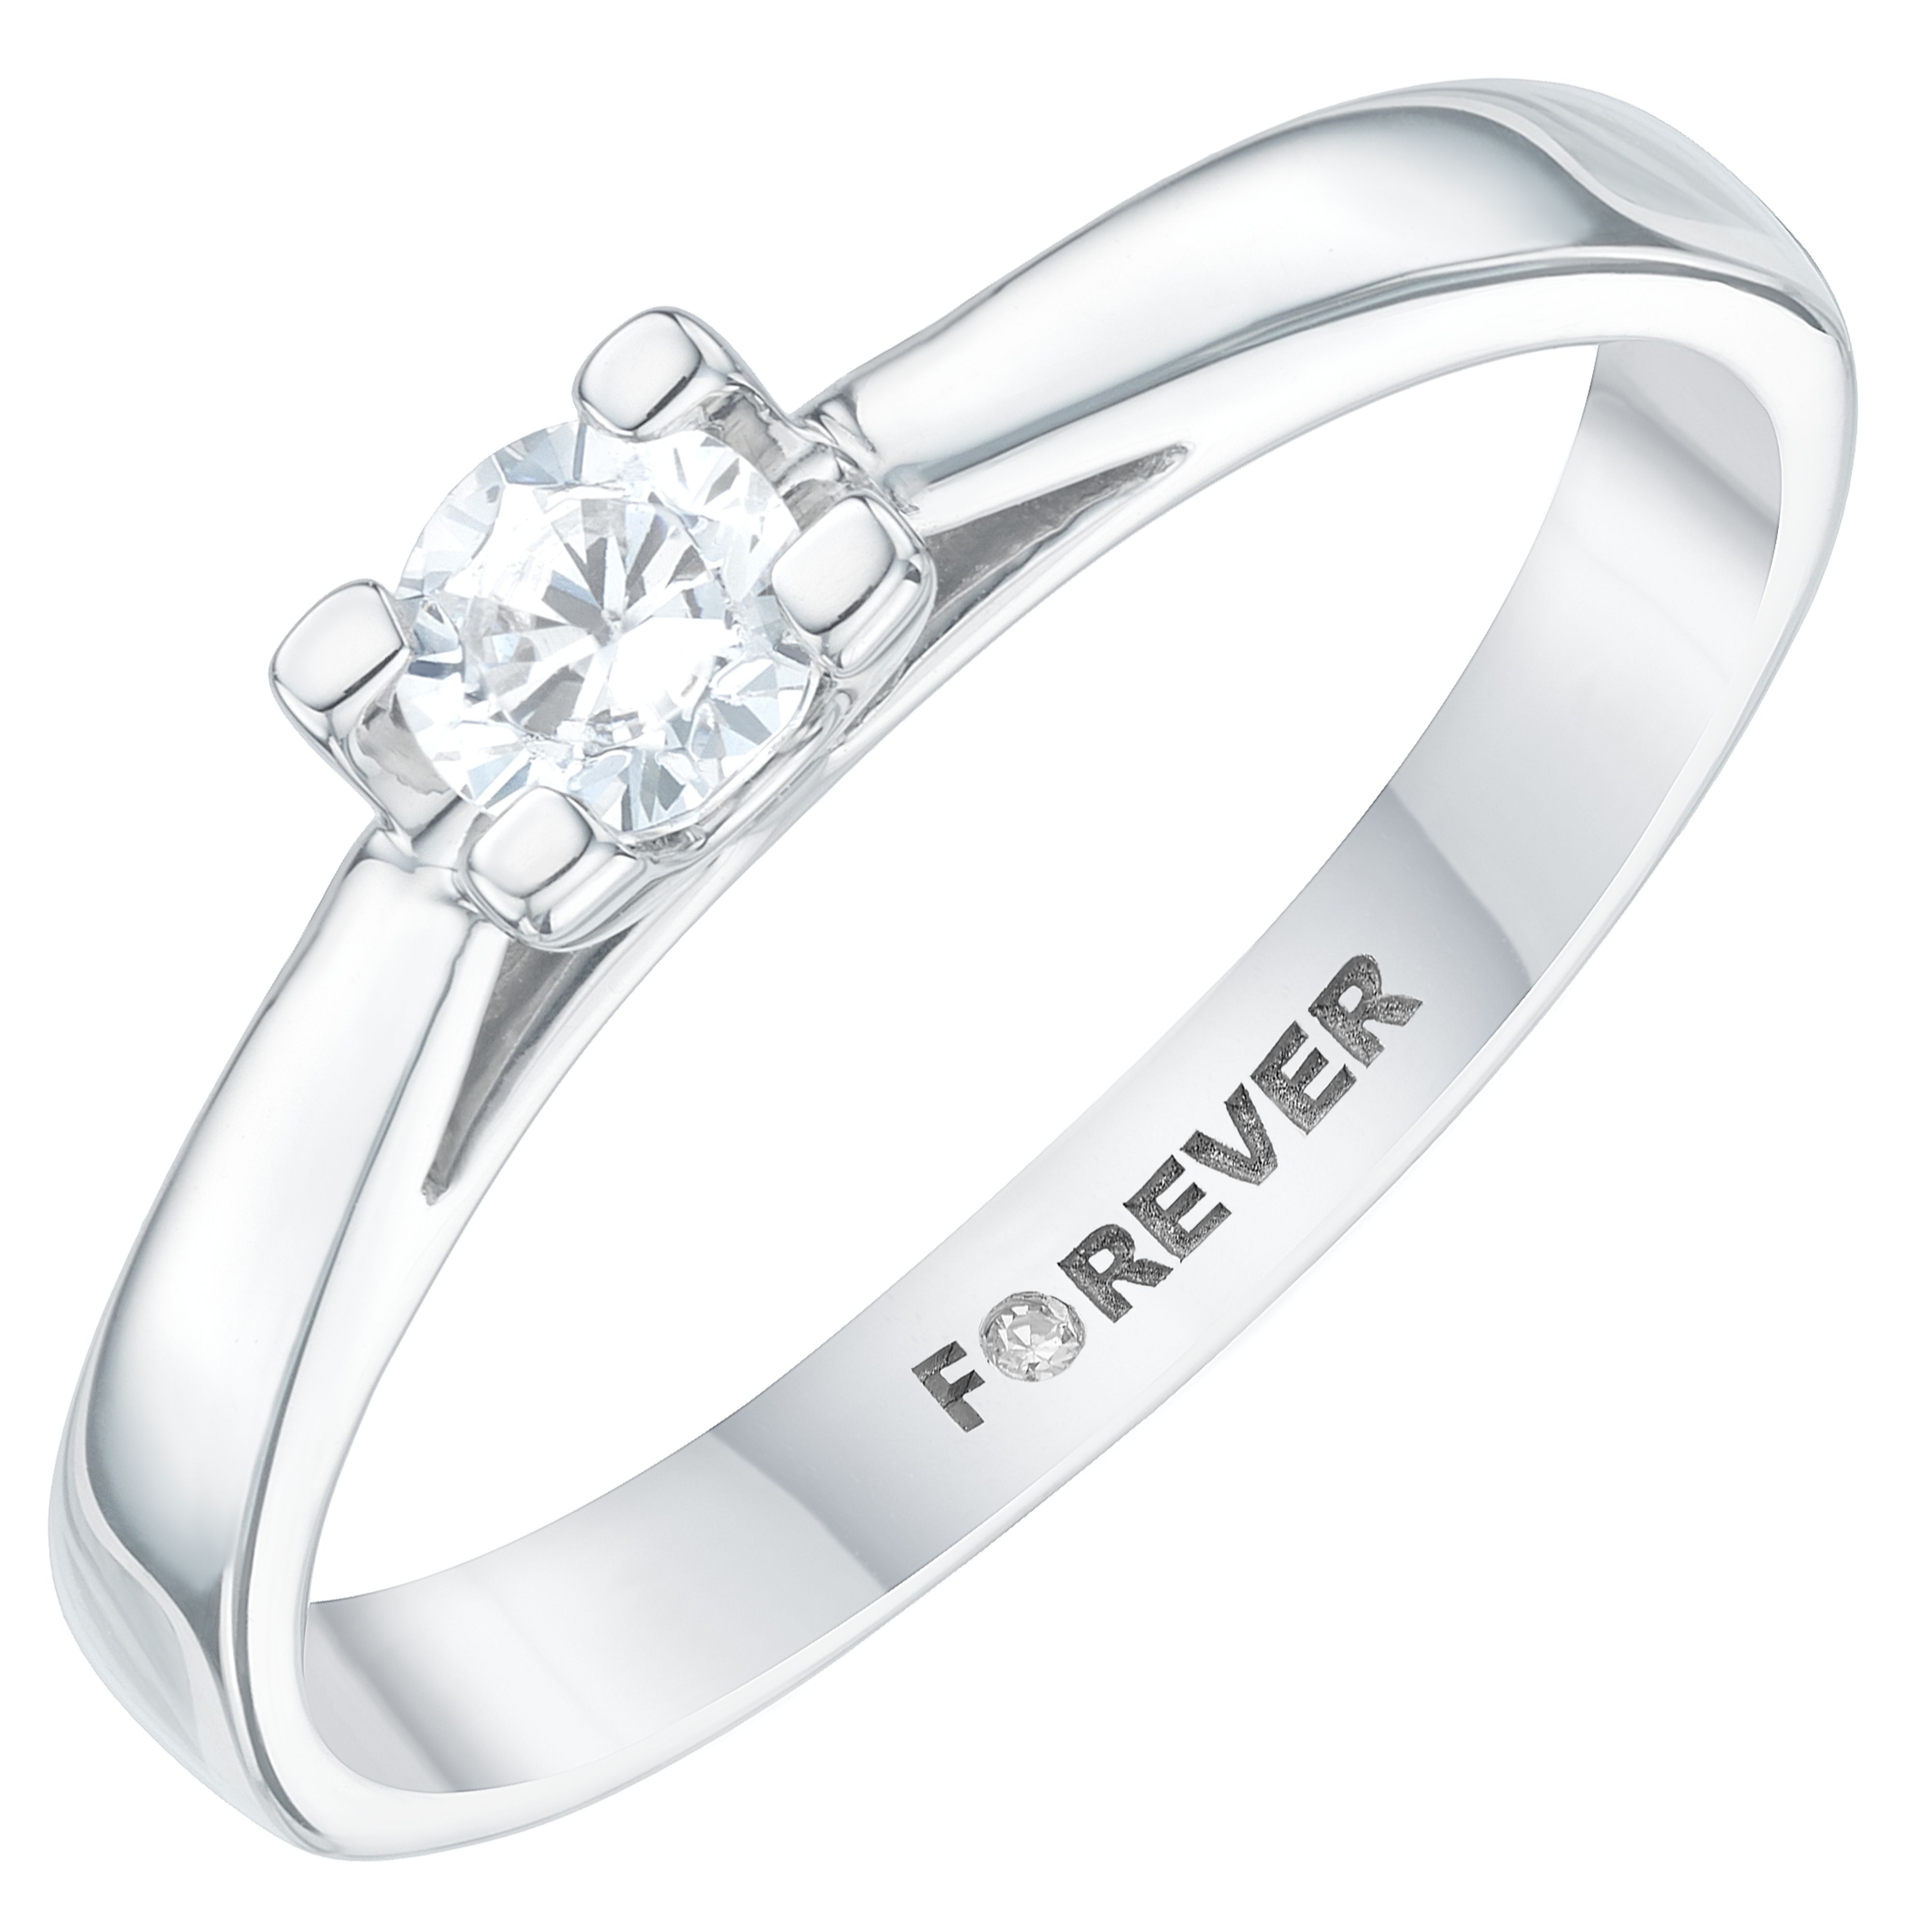 Simplicity And Supreme Elegance Are In Abundance With This Platinum Forever Diamond Solitaire Ring With A Single St Diamond Solitaire Rings Perfect Ring Rings